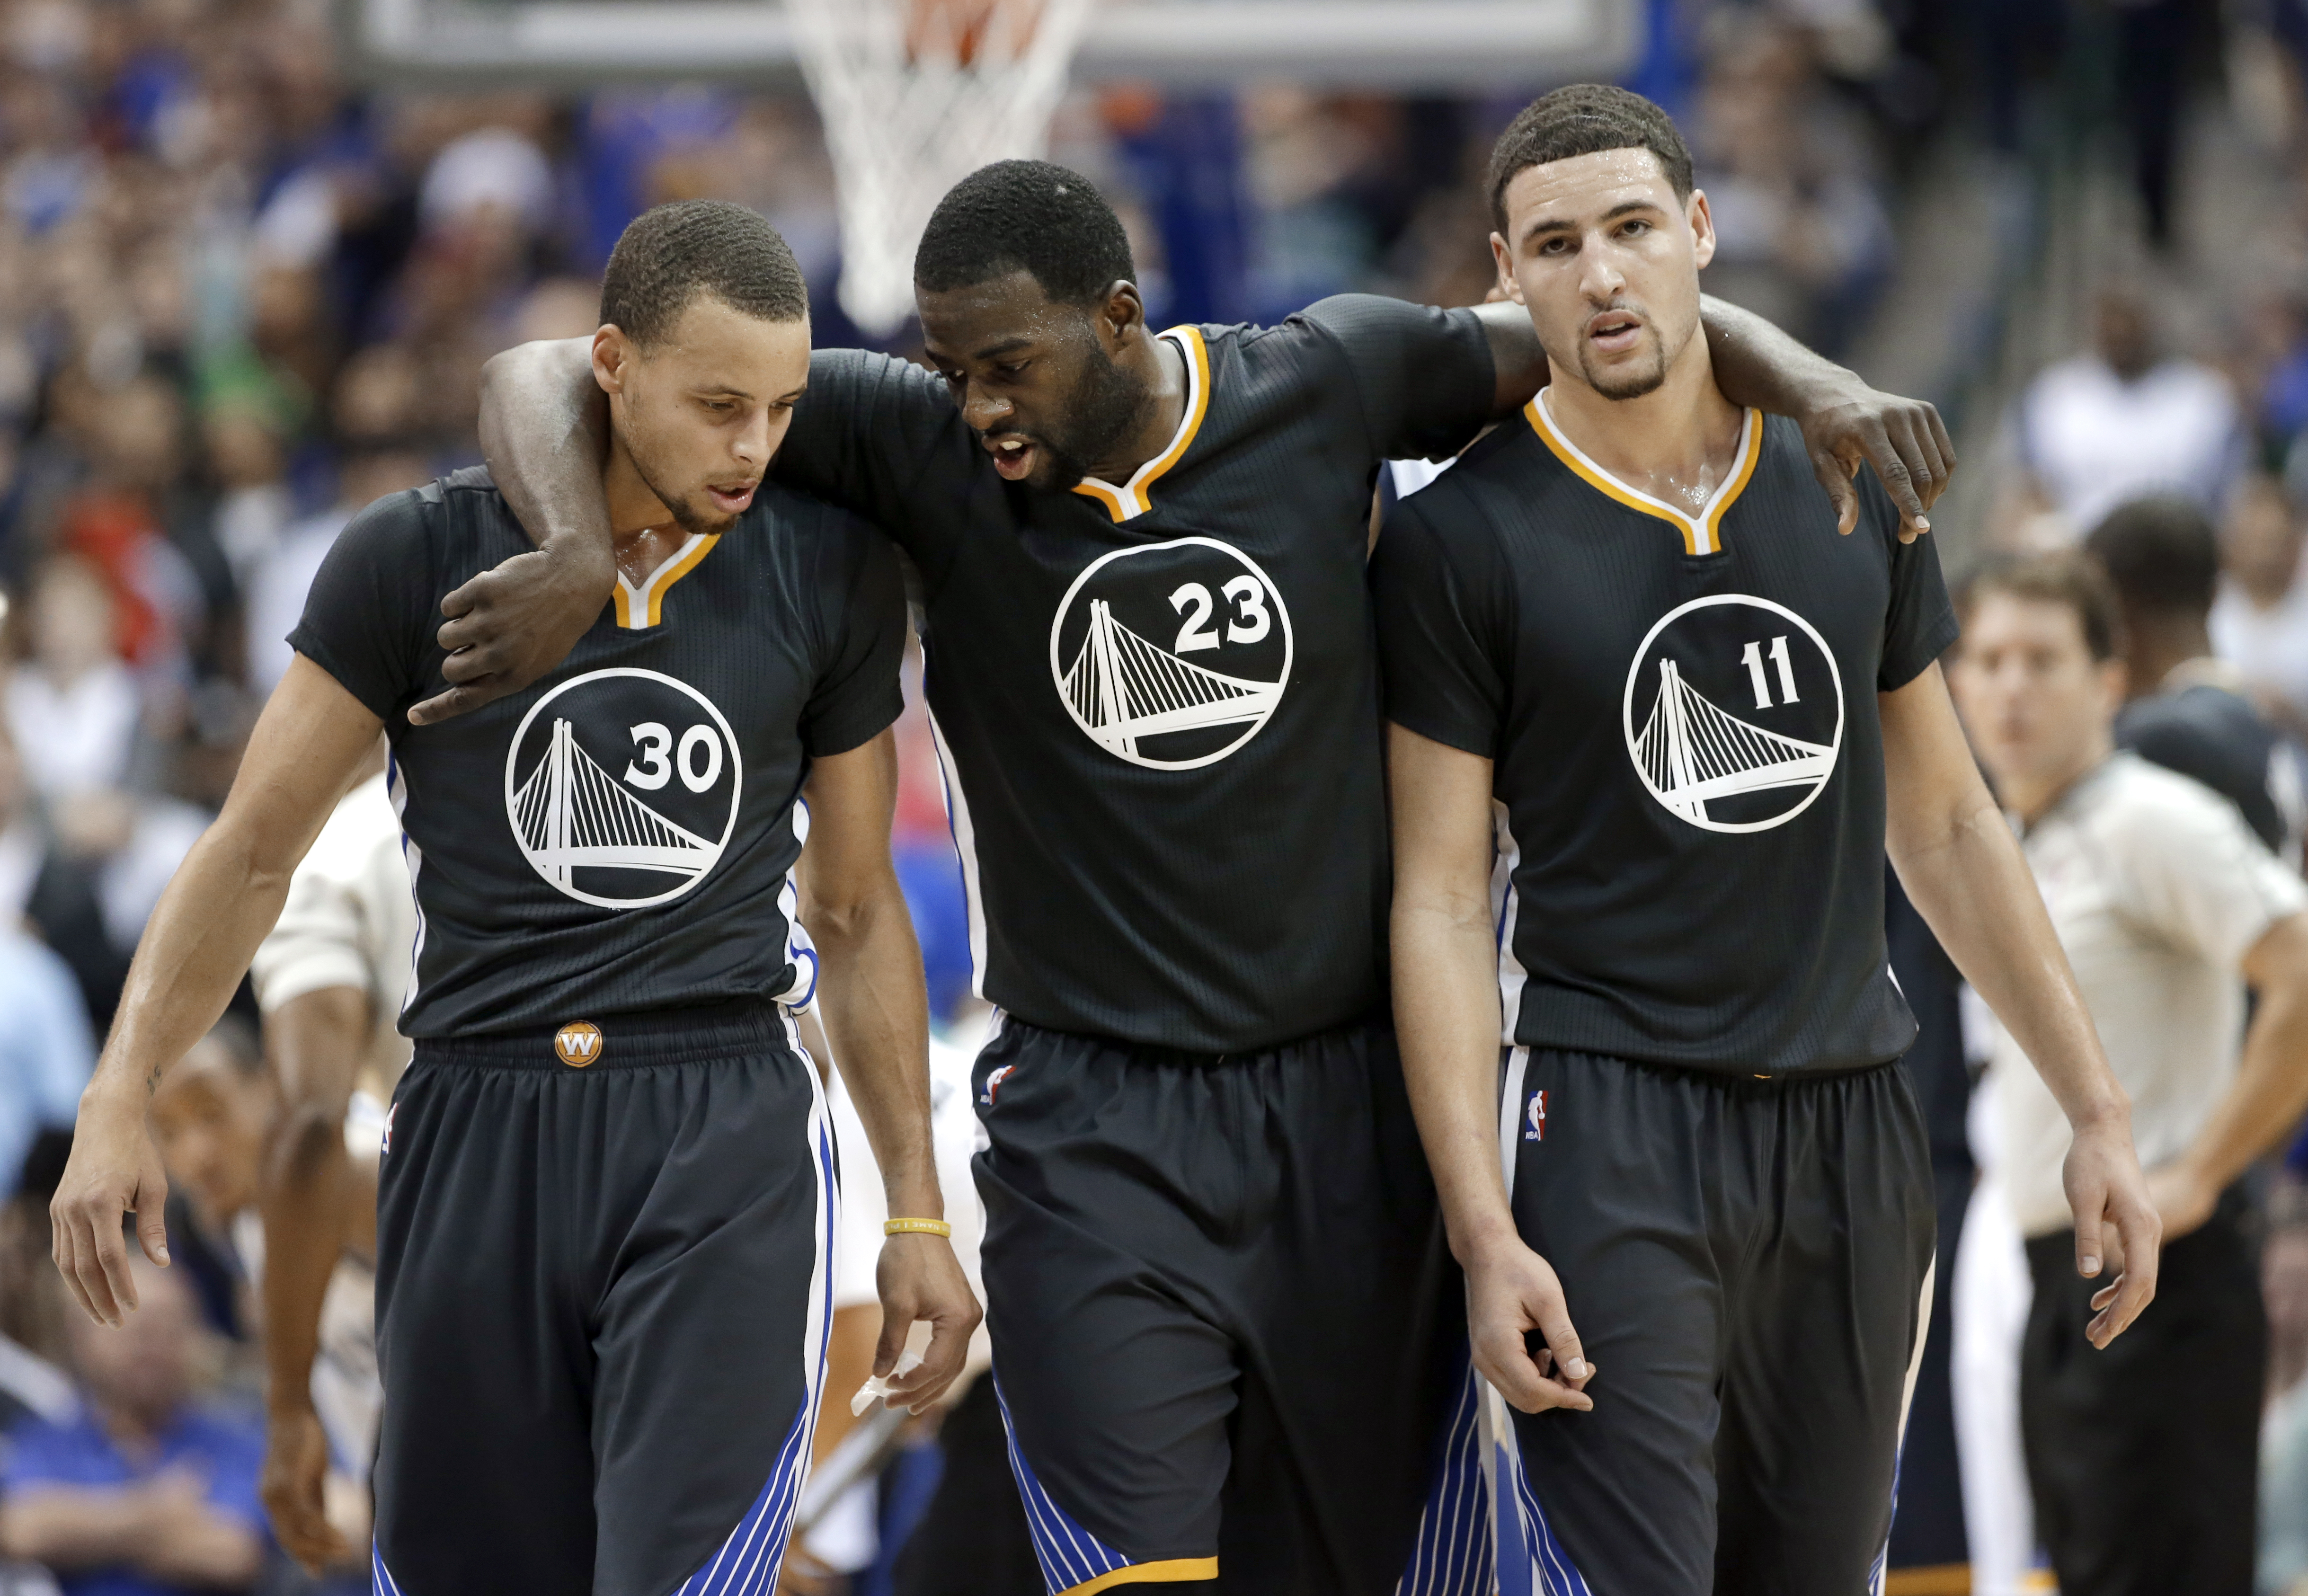 Golden State Warriors guard Stephen Curry (30), Draymond Green (23) and Klay Thompson (11) walk up court during the second half of an NBA basketball game against the Dallas Mavericks, Saturday, Dec. 13, 2014, in Dallas. Curry had 29-points, Green had 20-points and Thompson had 25-points in the 105-98 Warriors win. (AP Photo/Tony Gutierrez)